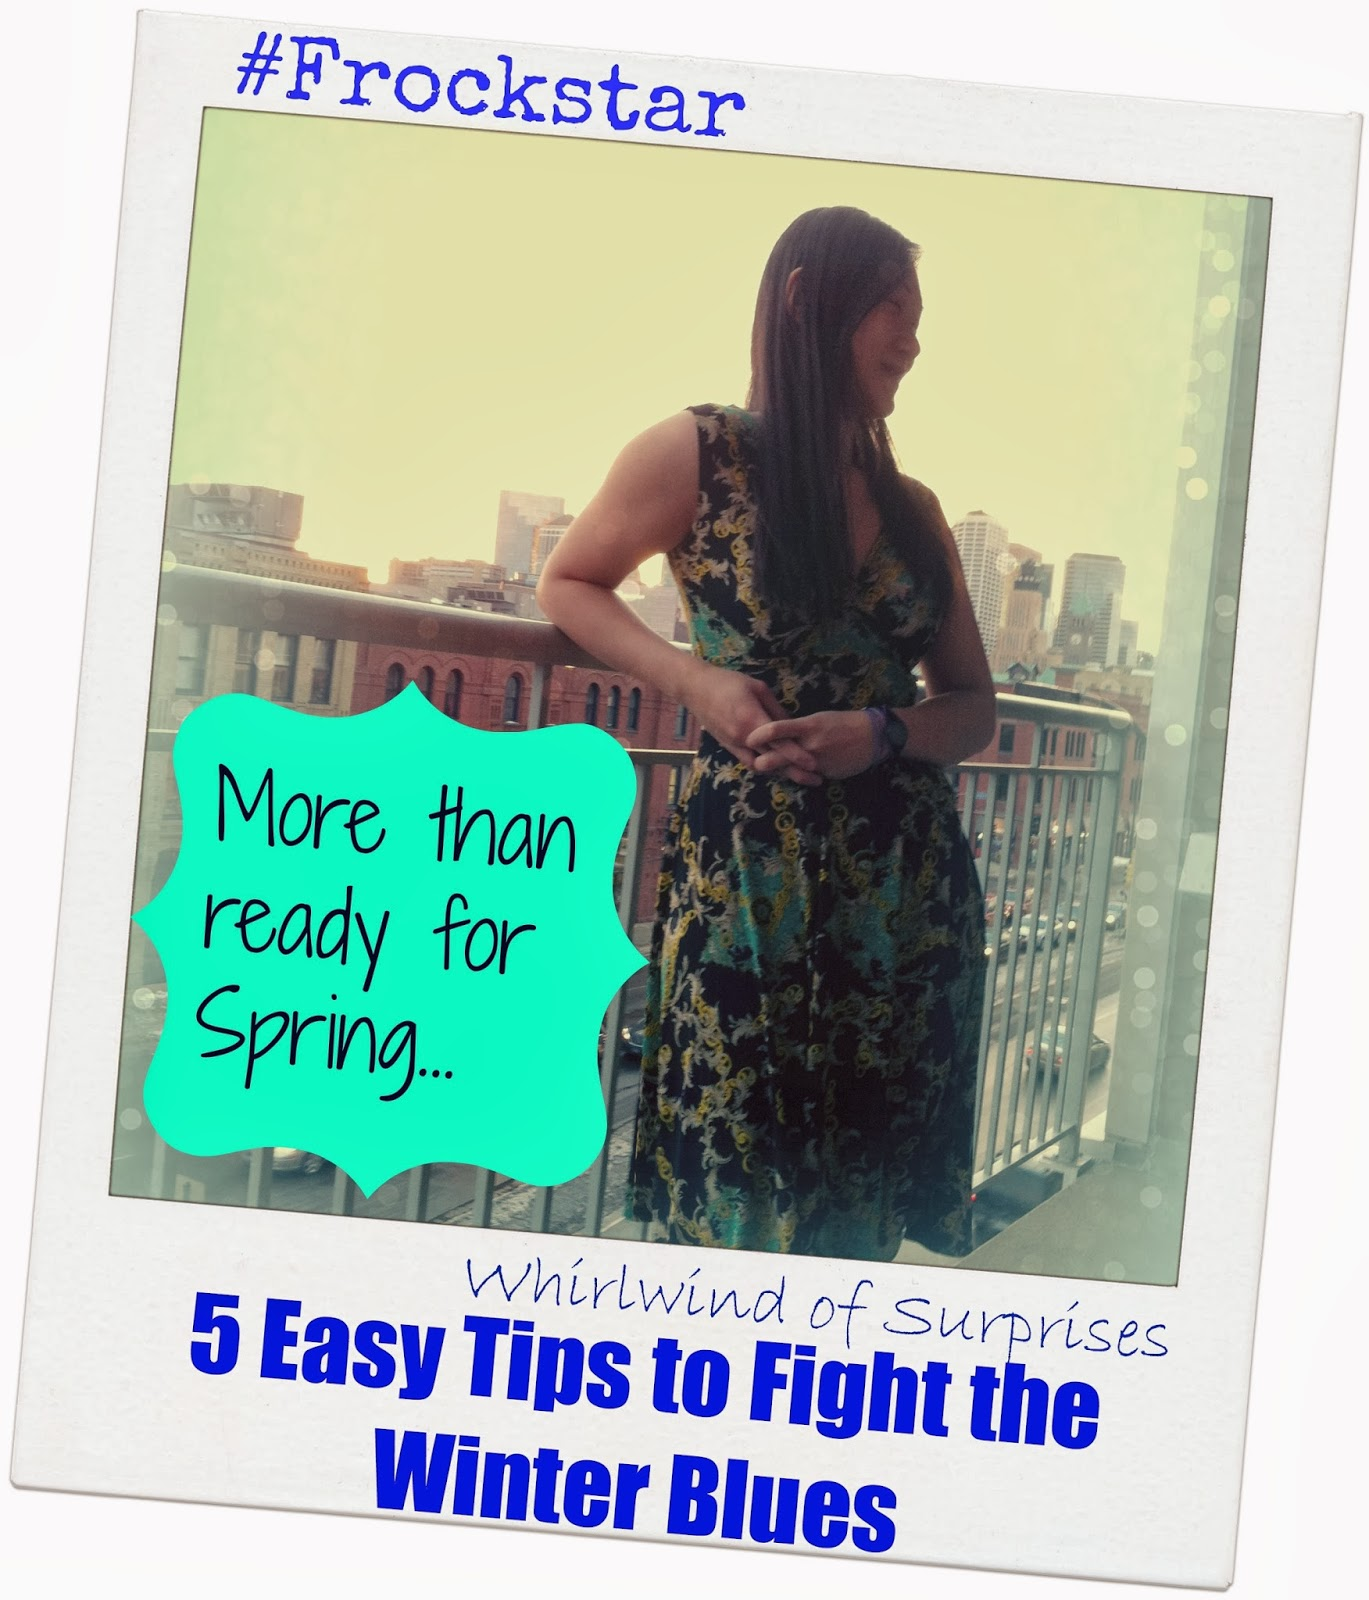 5 Easy tips to fight the Winter Blues